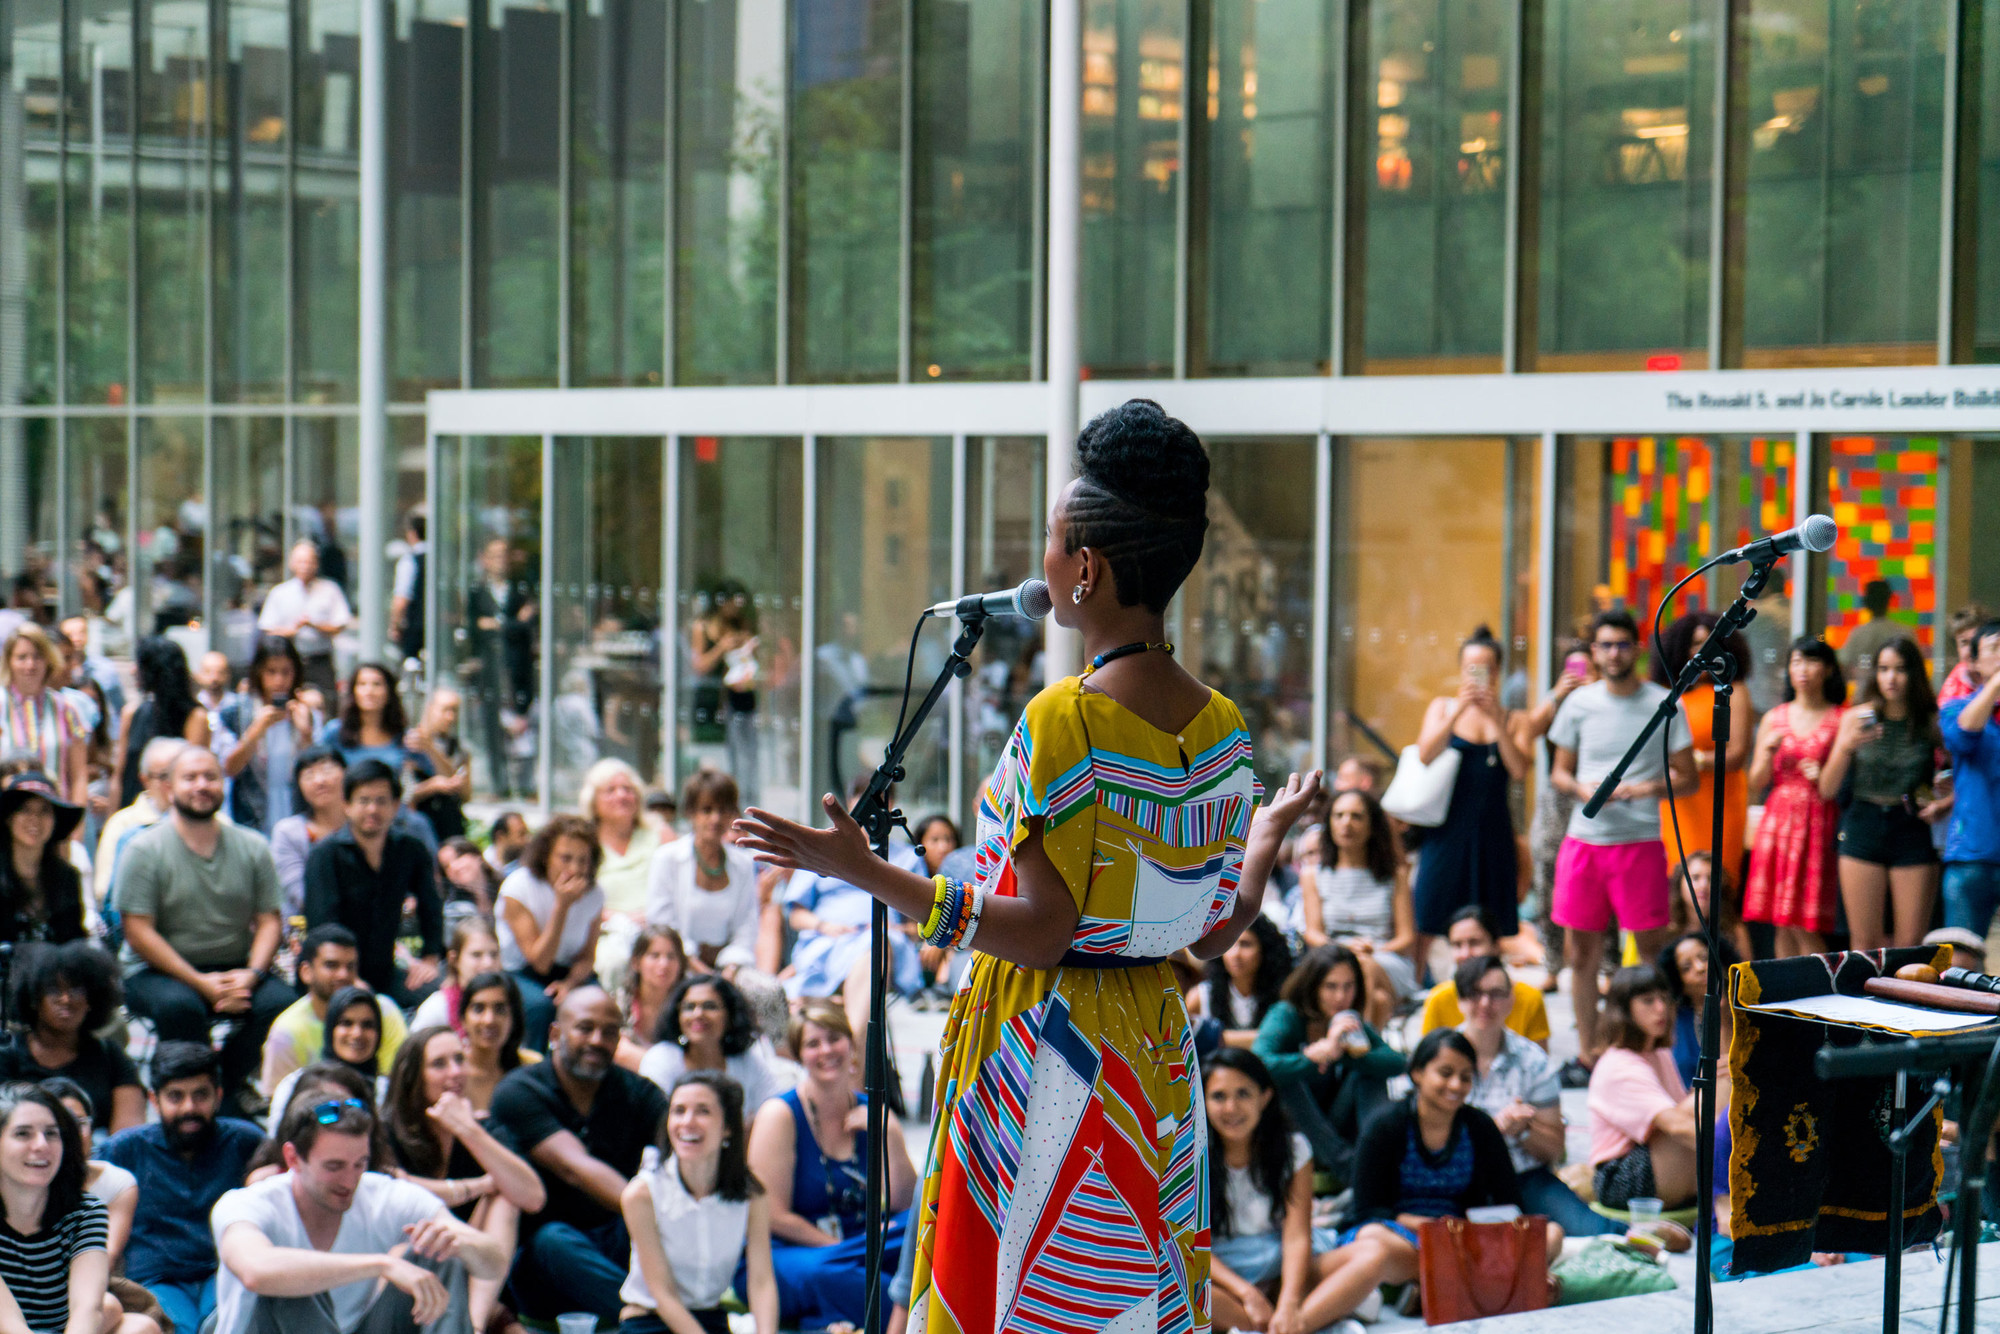 Alsarah at MoMA, summer 2017. Photo: Alex Nawrocky